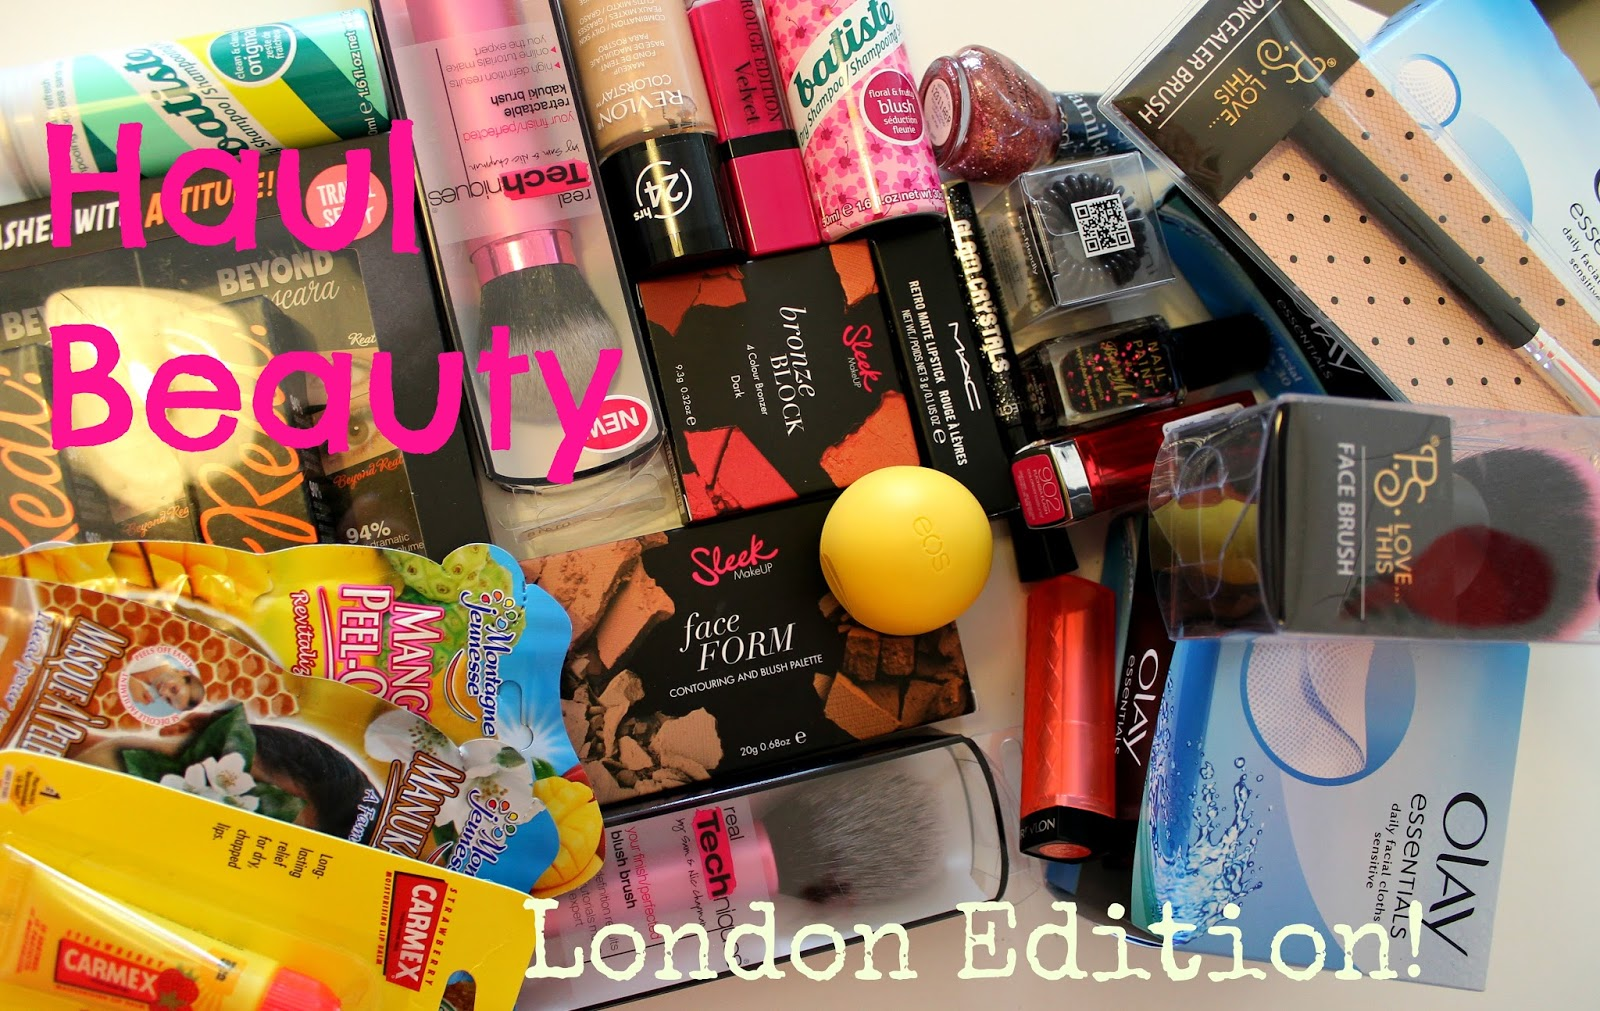 acquisti beauty londra